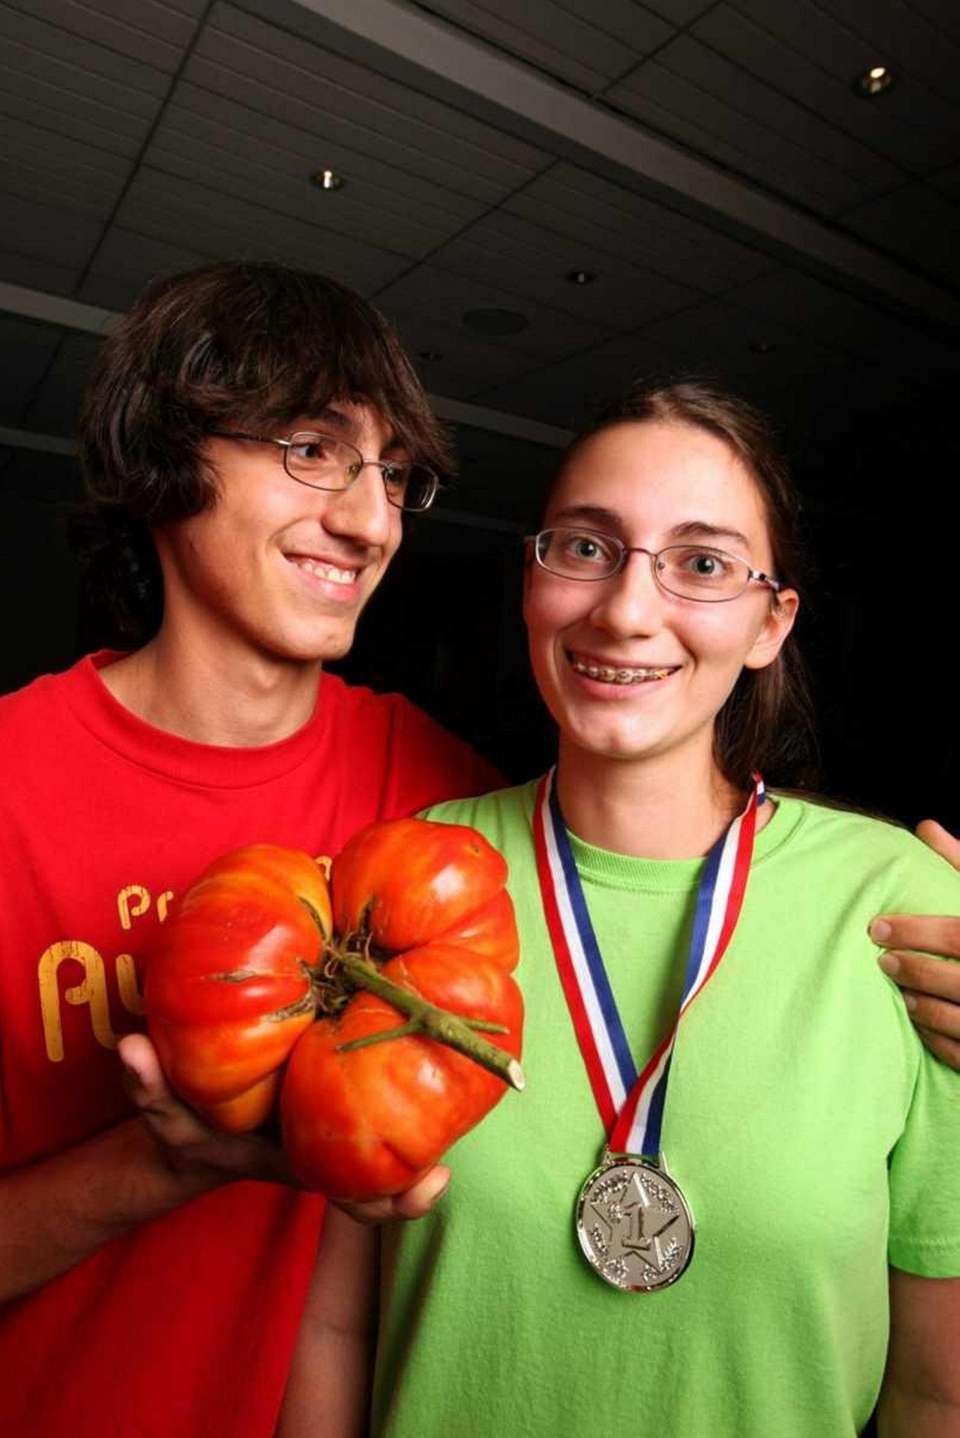 At the Great Tomato Weigh-in Contest held at